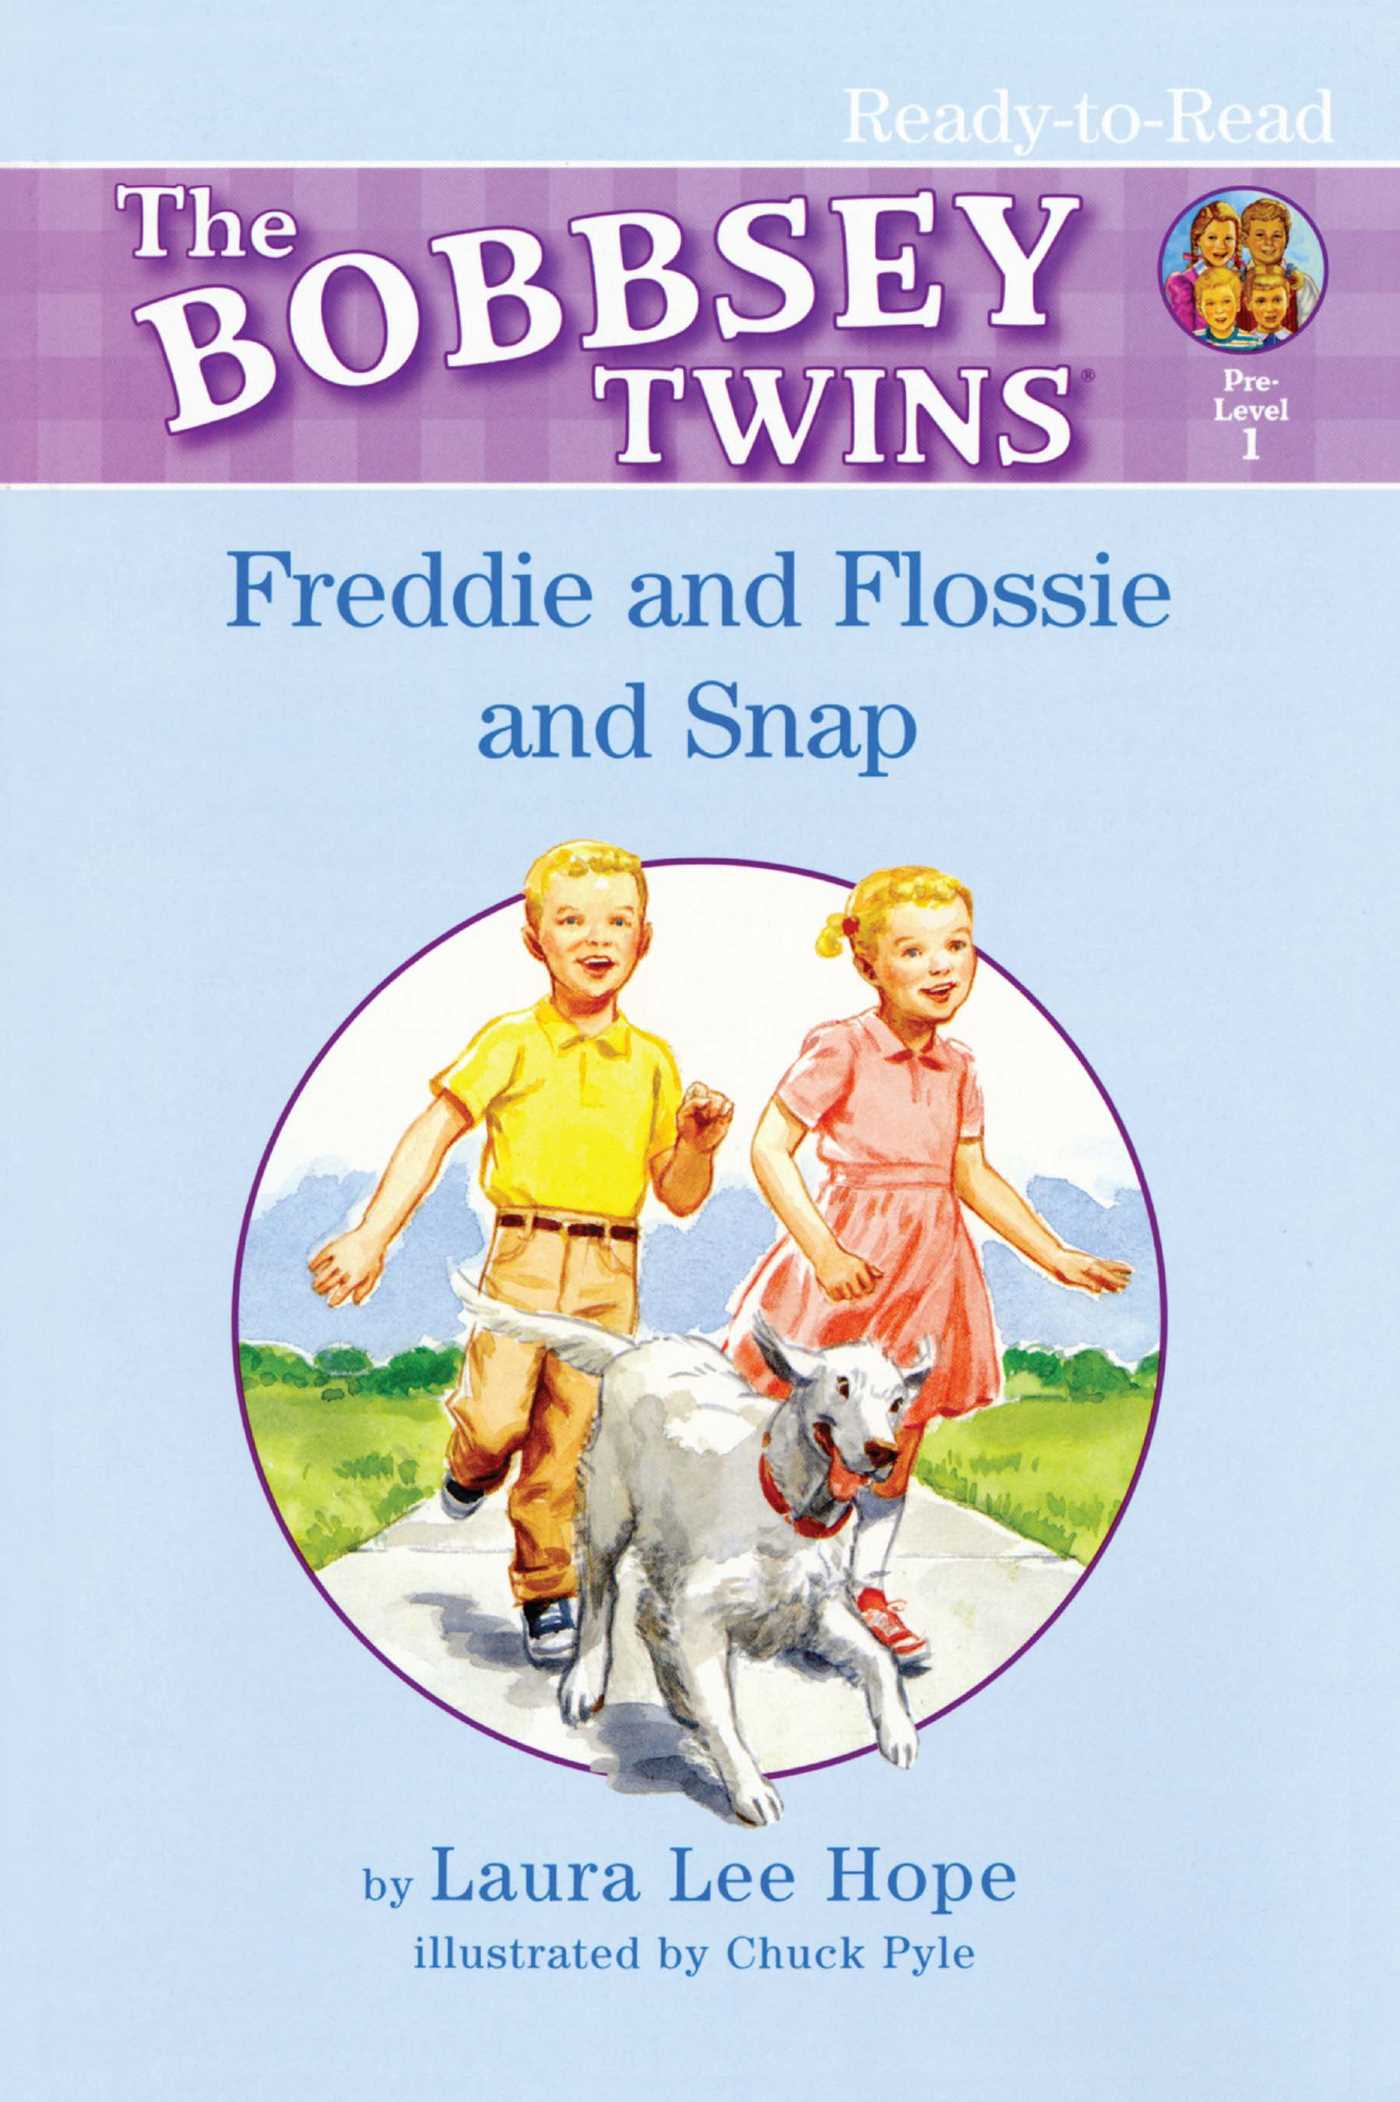 Freddie and flossie and snap 9781416902676 hr